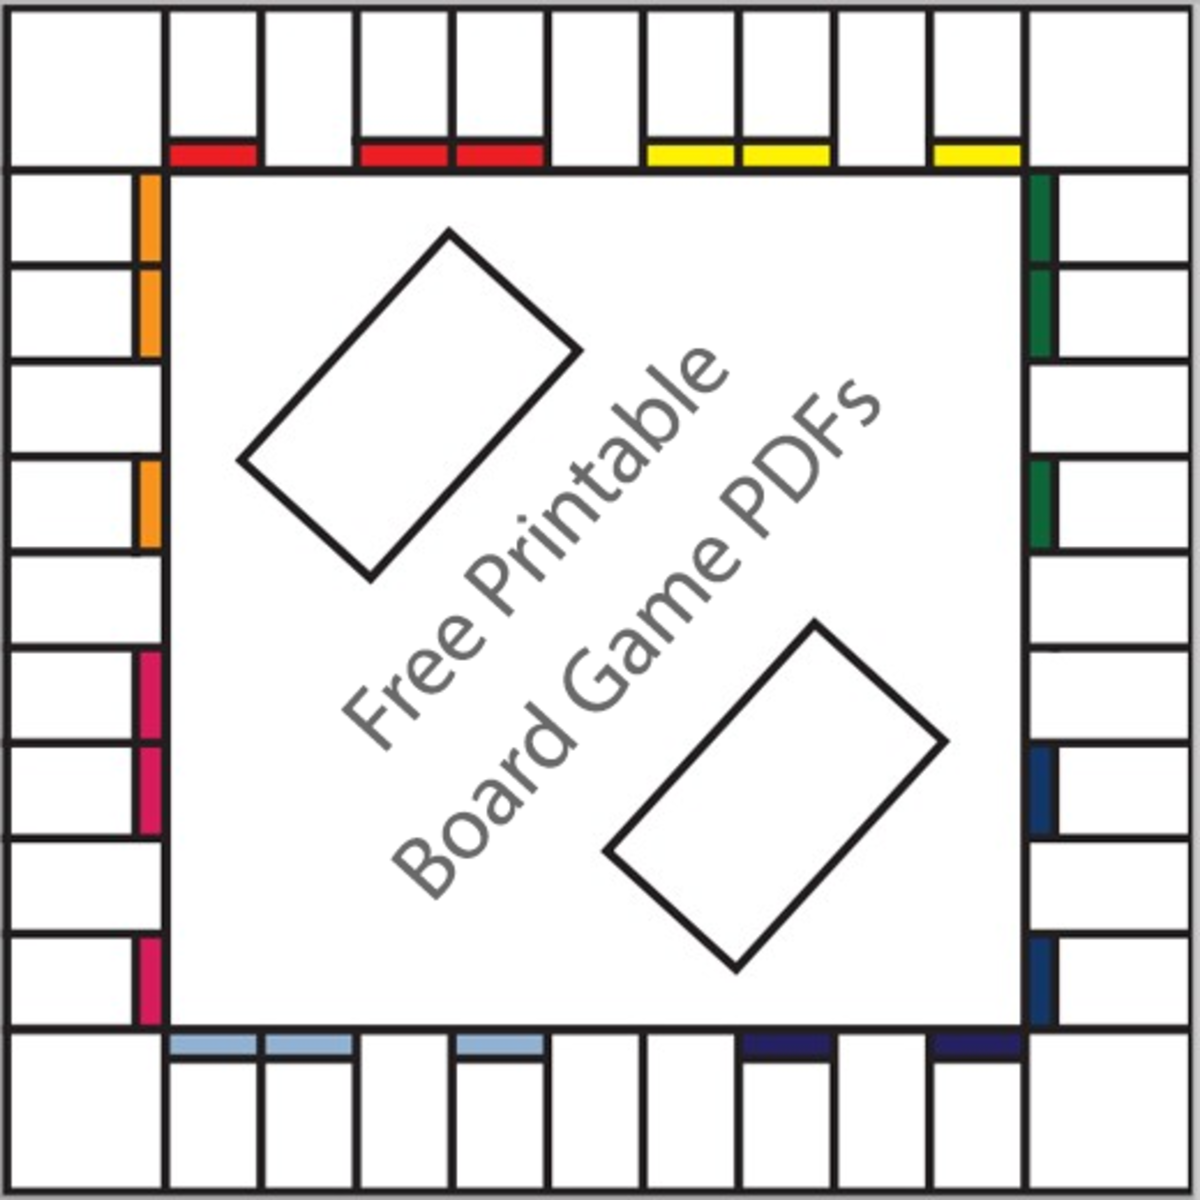 16 Free Printable Board Game Templates MTAUkVpl